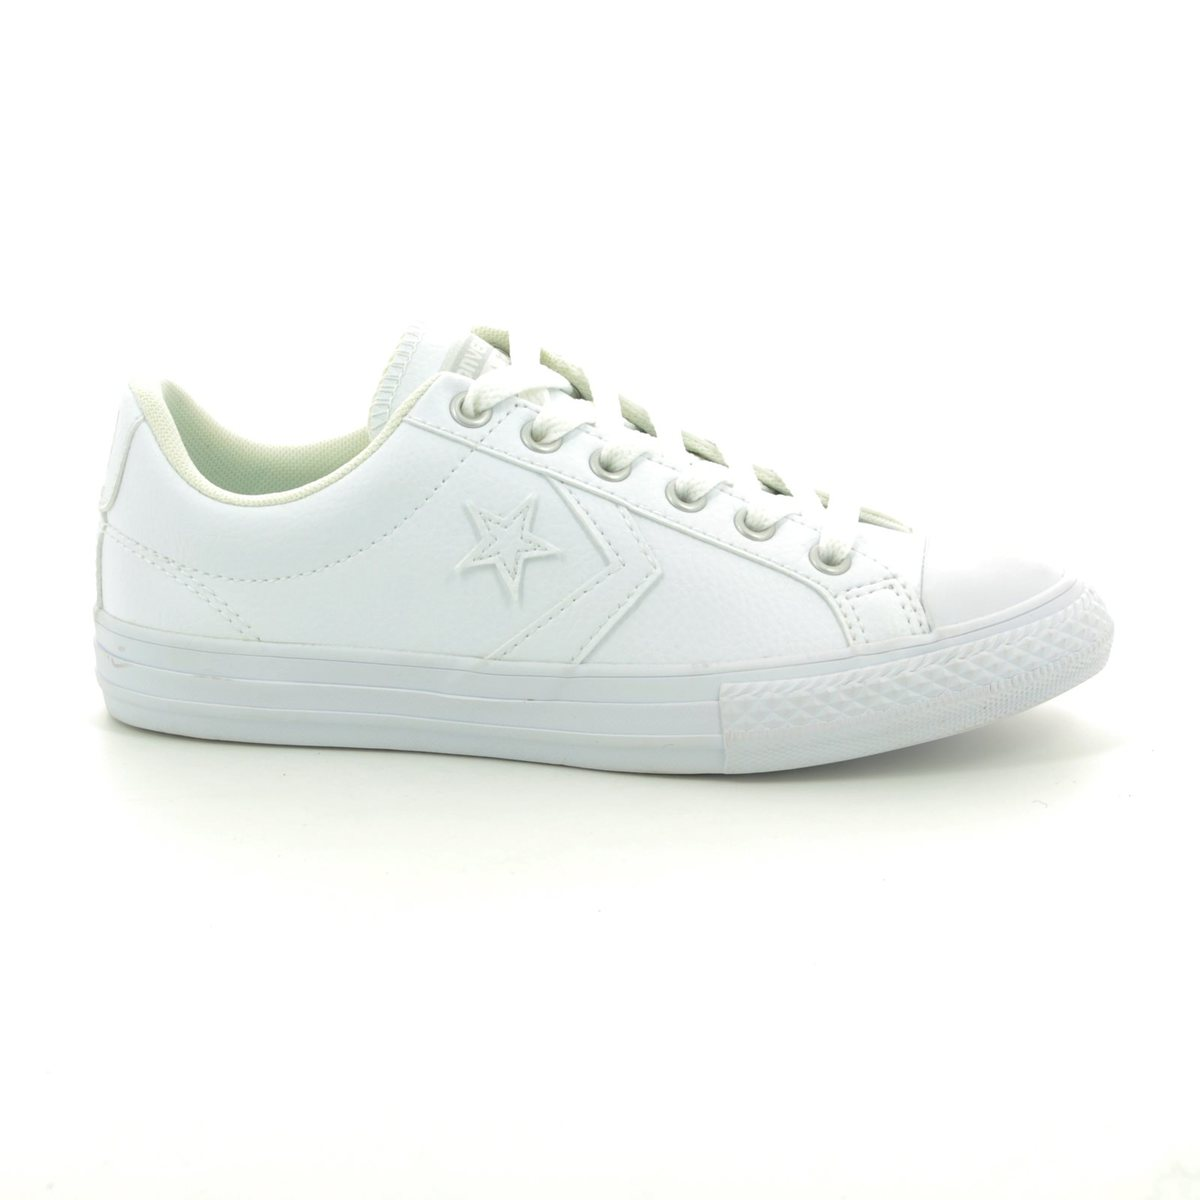 3620be347d51f0 Converse Trainers - White - 651827C 100 Star Player EV OX White